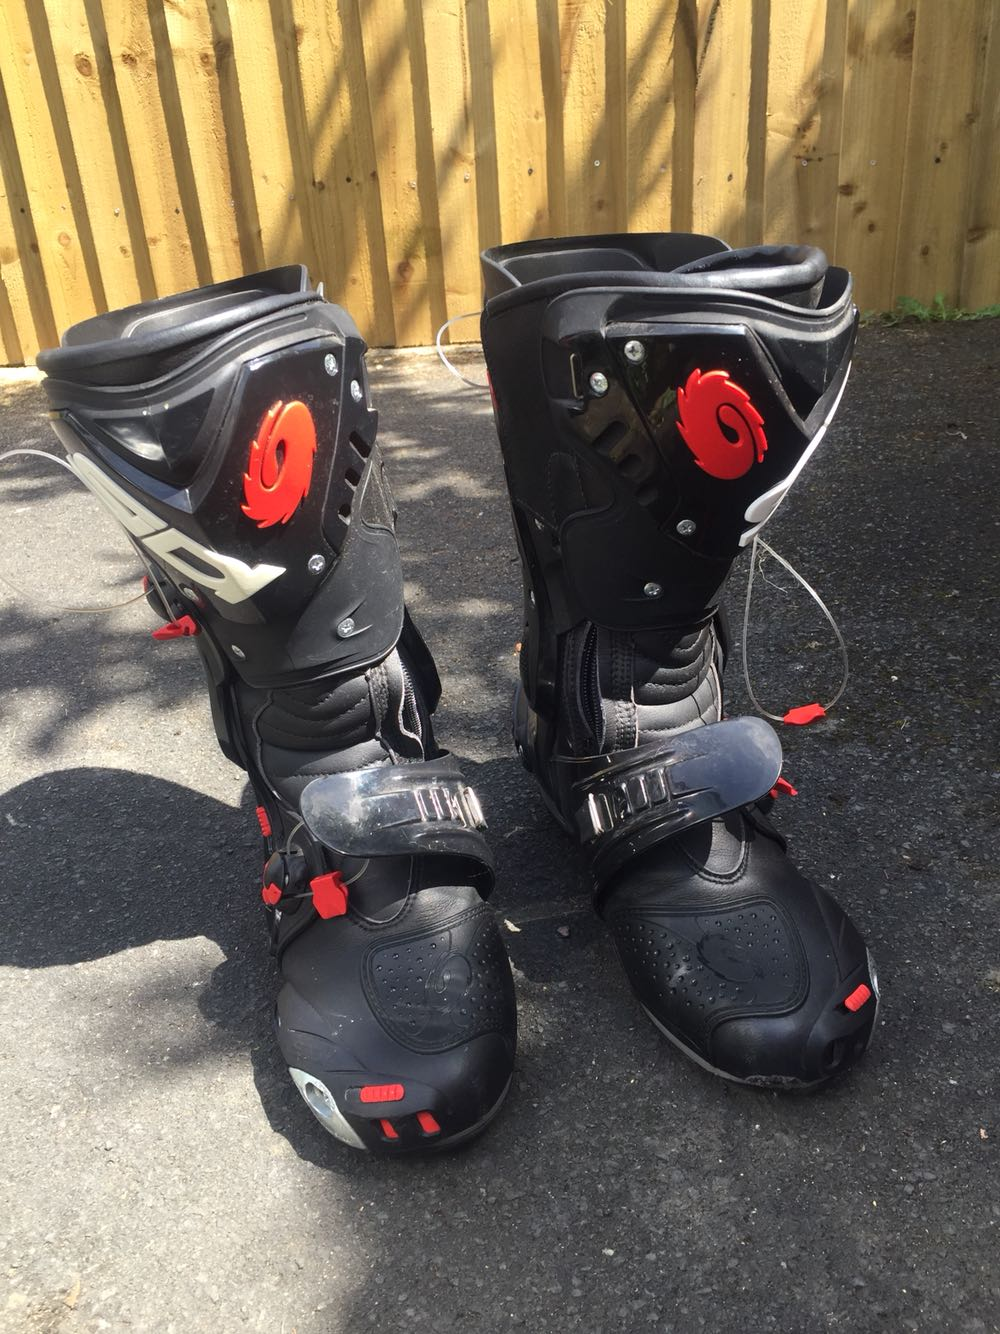 sidi boots sale - Second Hand Motorcycle Clothing, Buy and Sell in ...